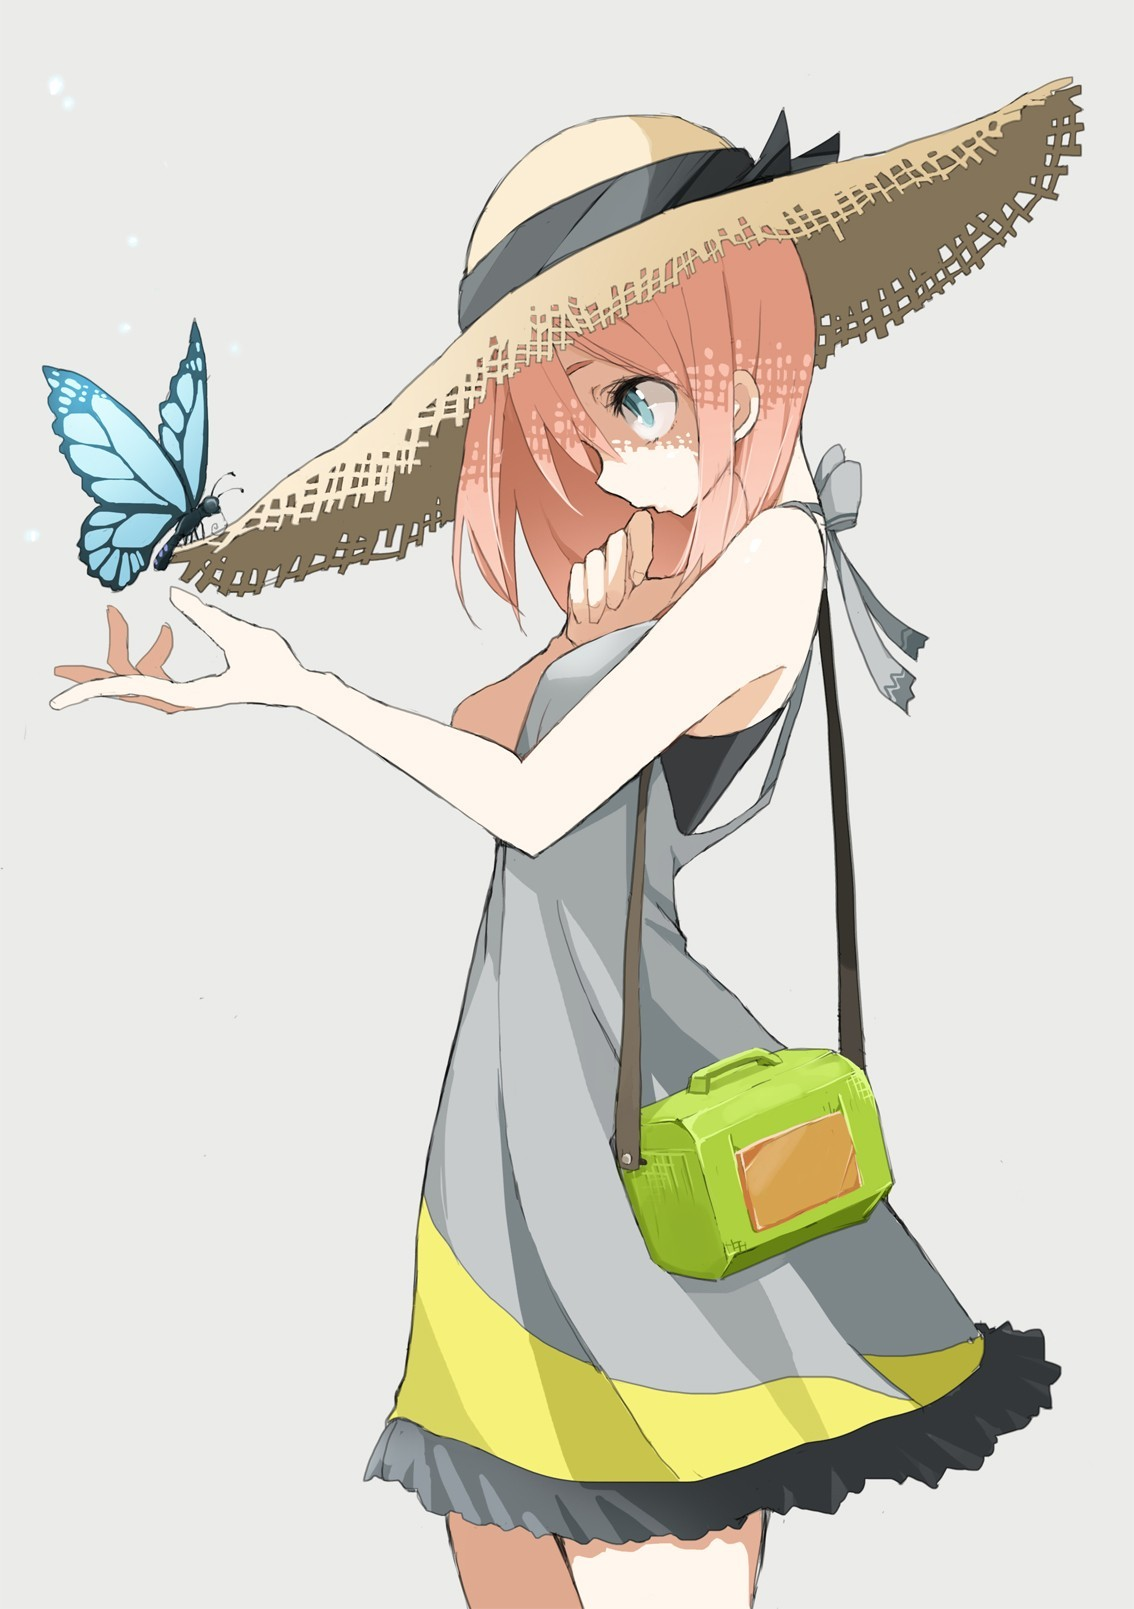 Anime 1134x1609 anime anime girls original characters butterfly hat women with hats blue eyes dress simple background white background